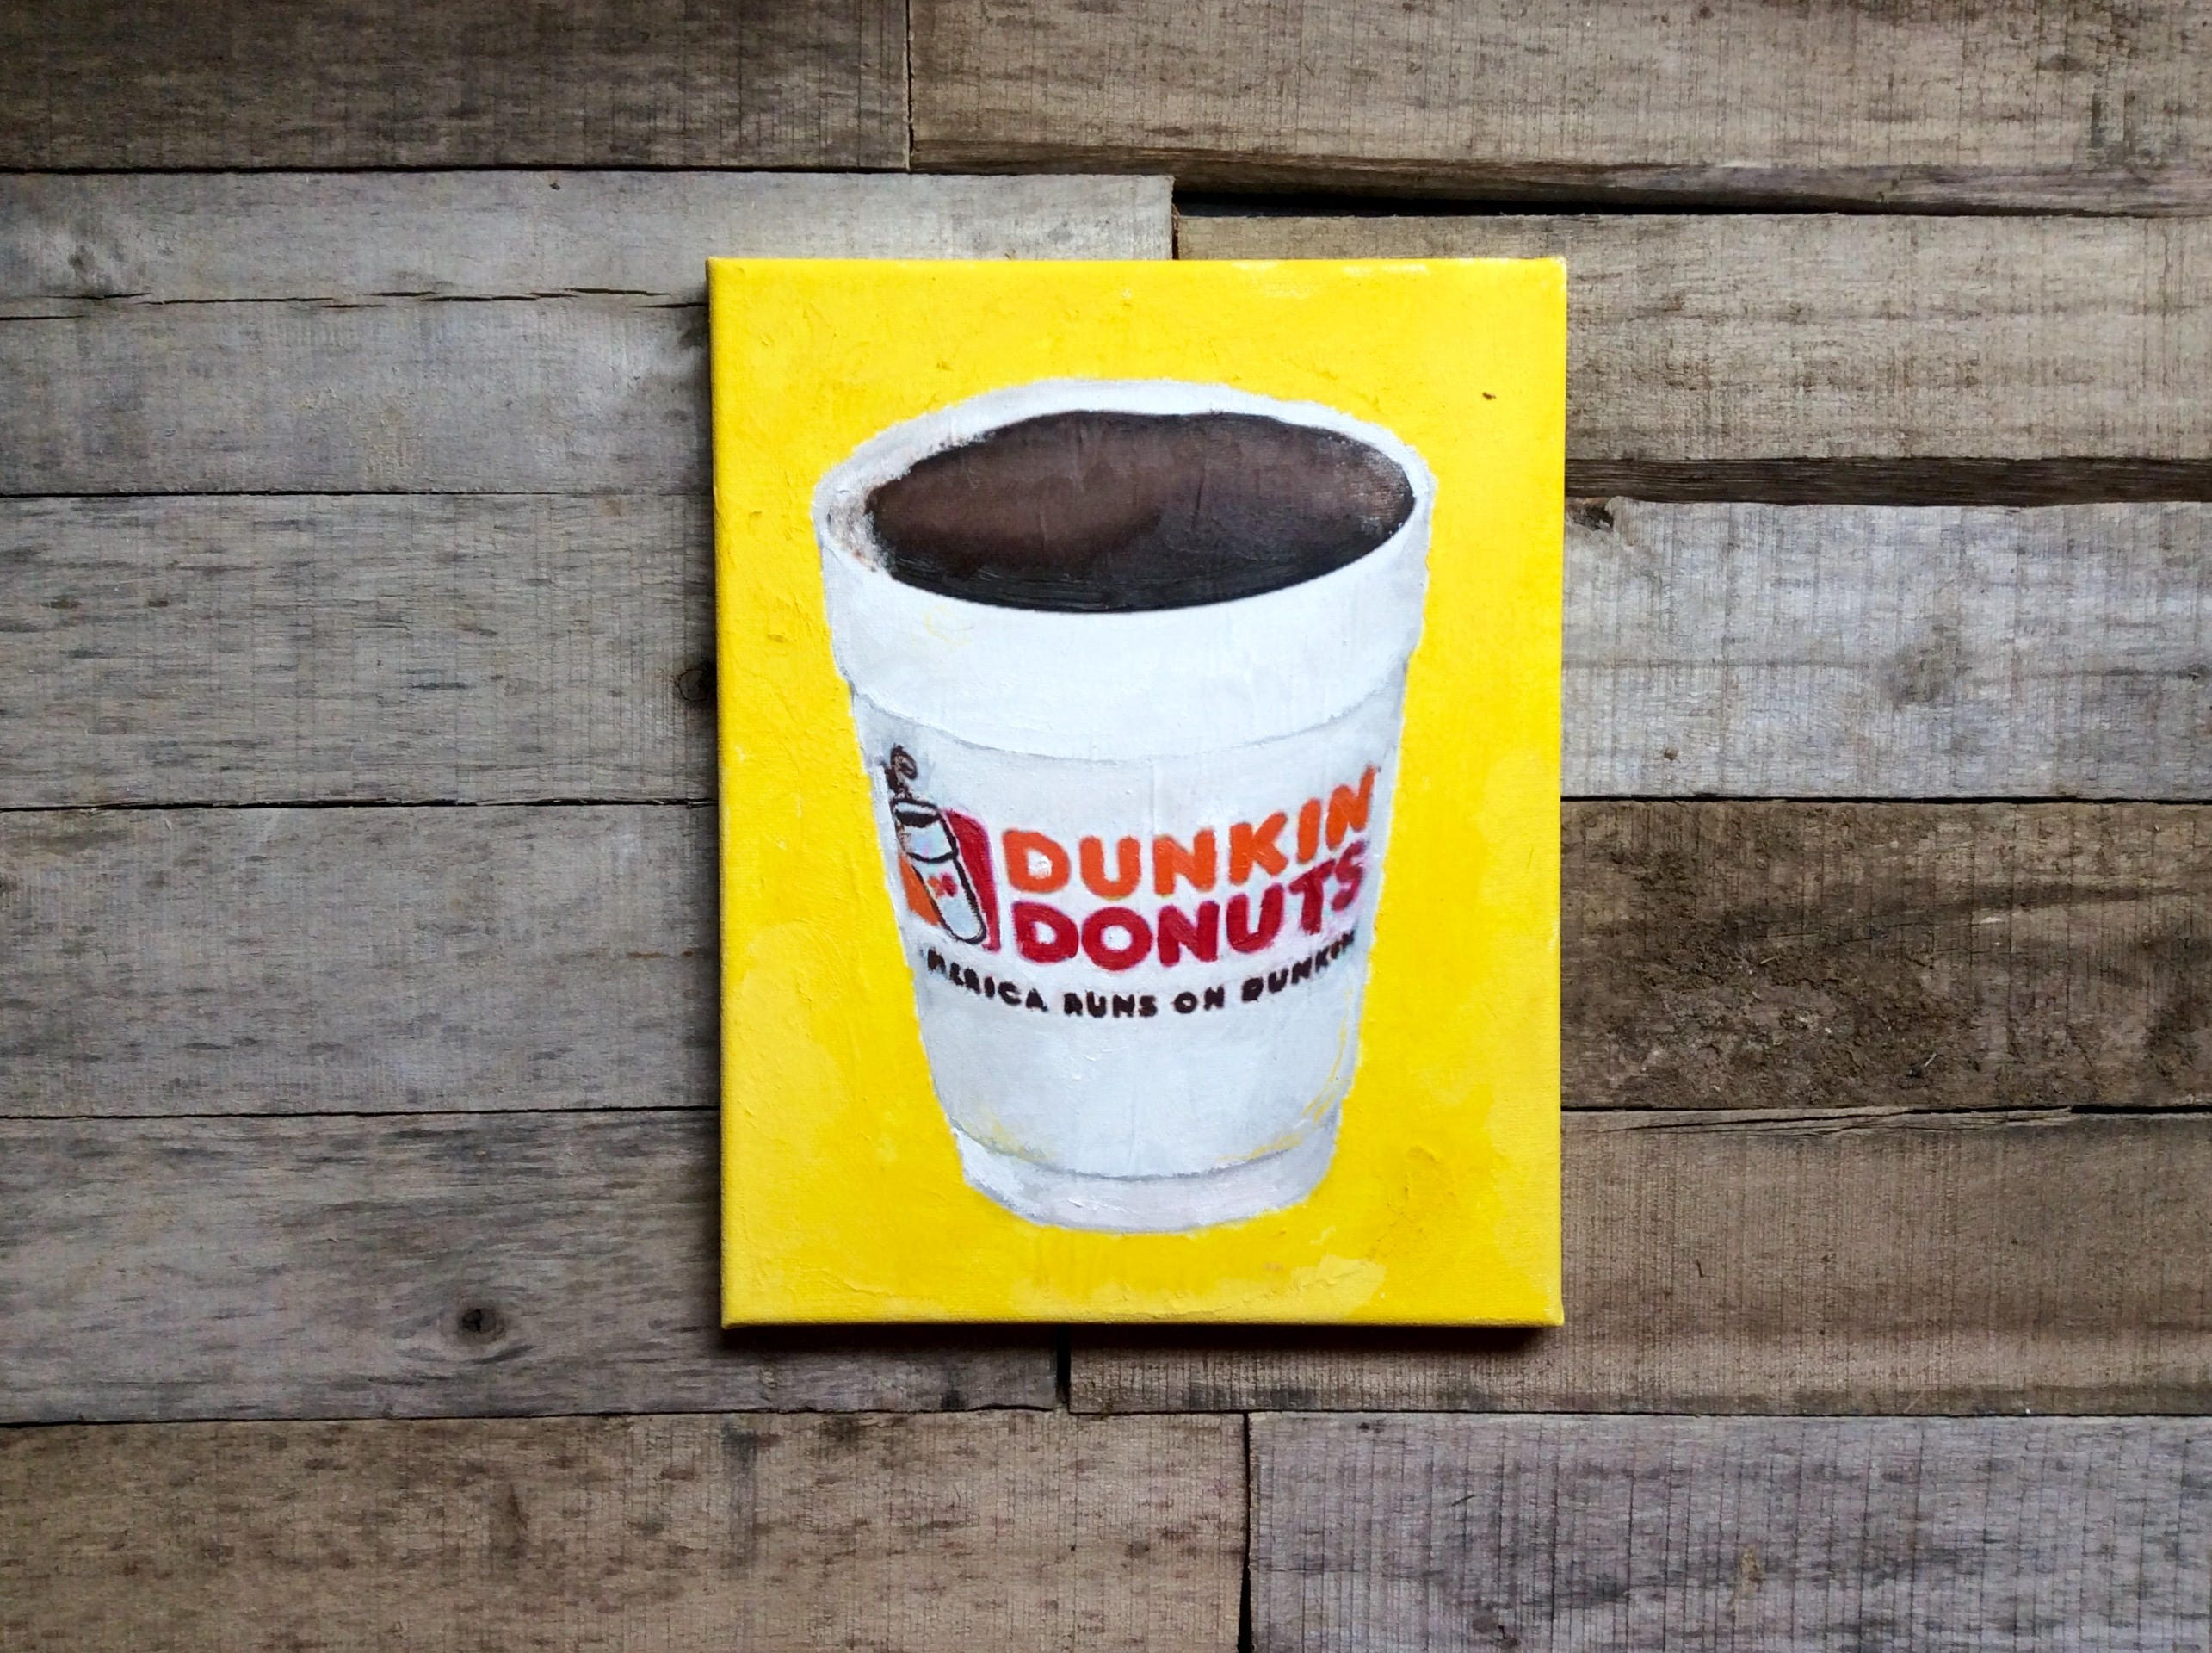 Dunkin Donuts 8x10 Oil Paints and Ink Transfer Painting Gift